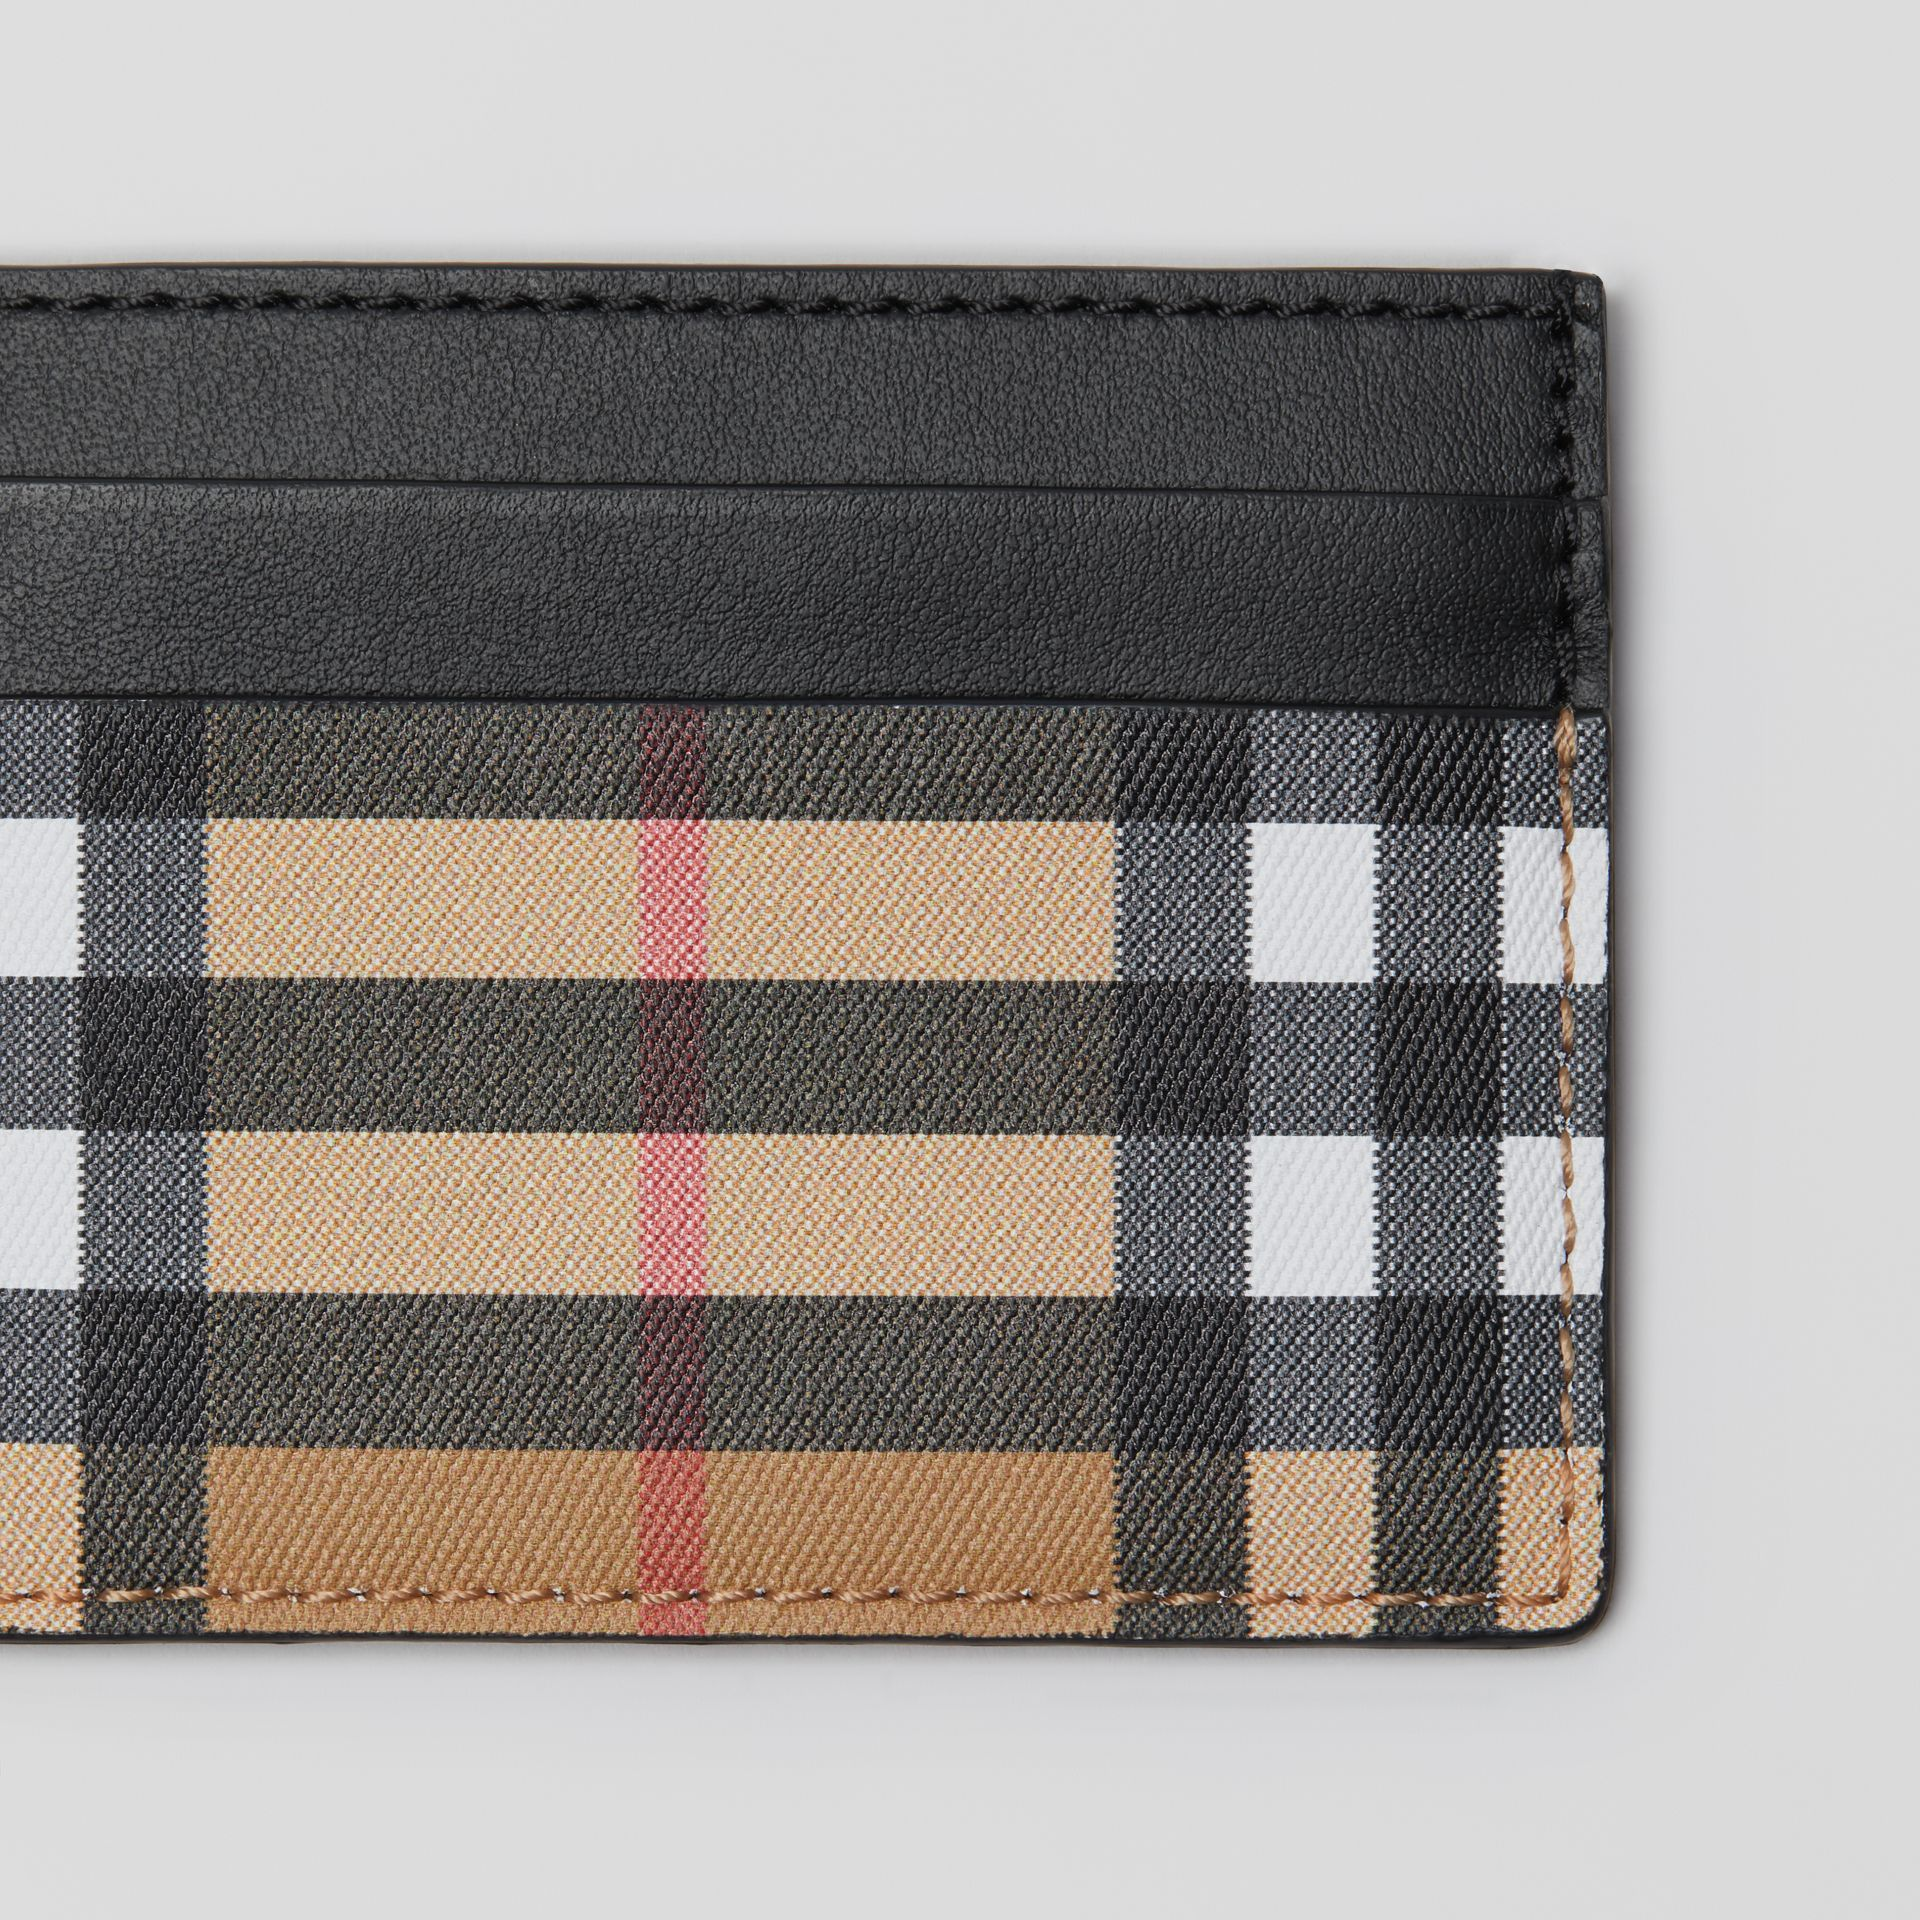 Vintage Check Leather Card Case in Black - Women | Burberry Australia - gallery image 1